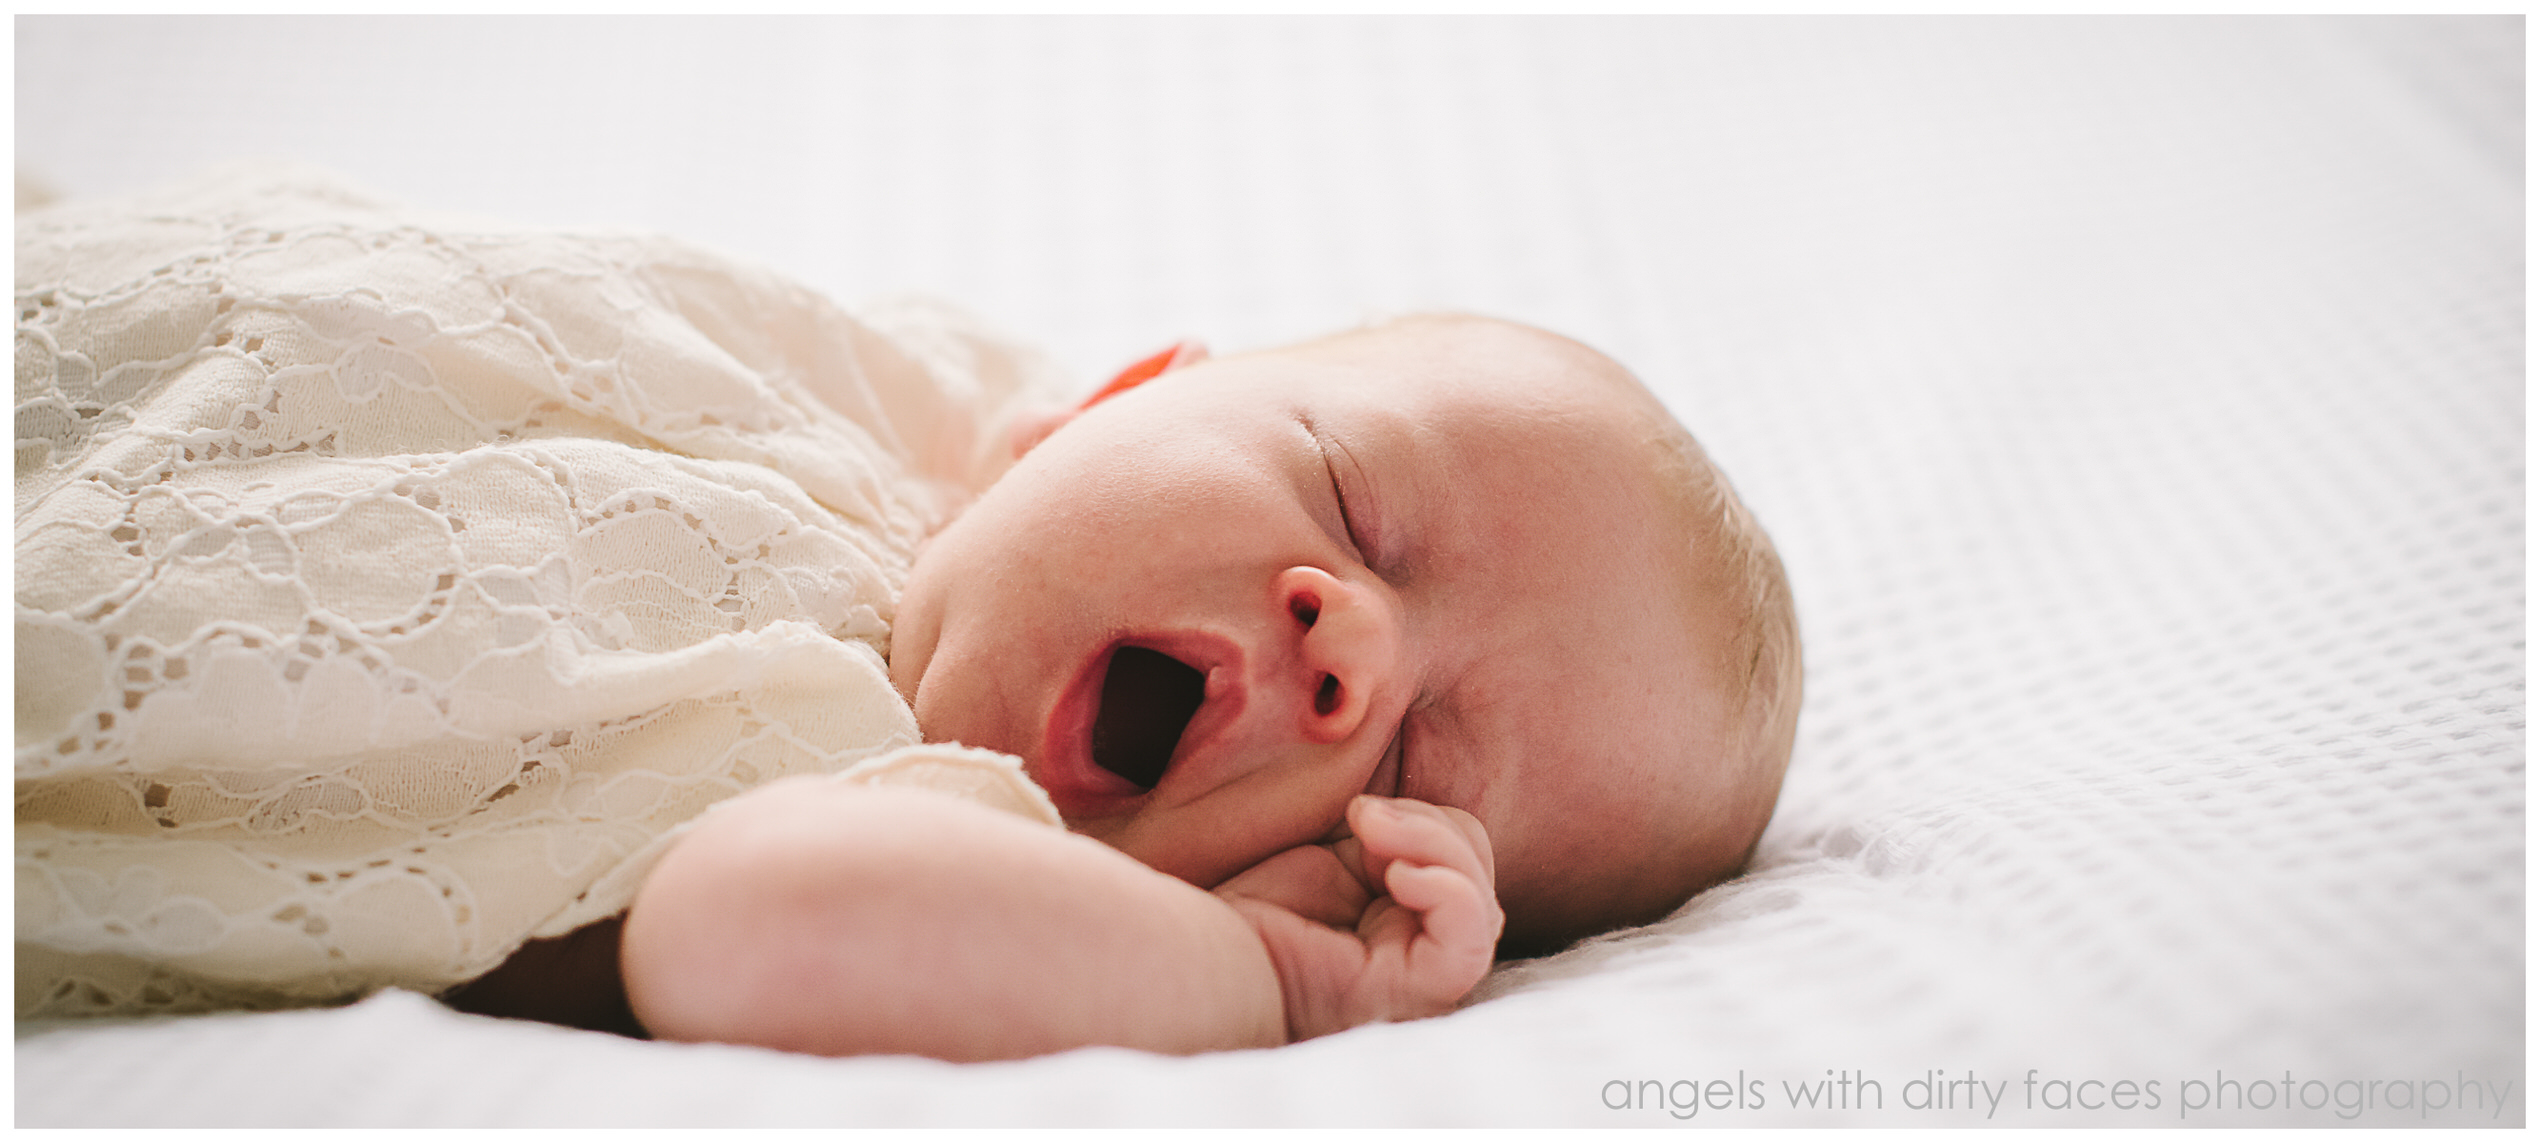 Tiny newborn baby yawns during her photography session